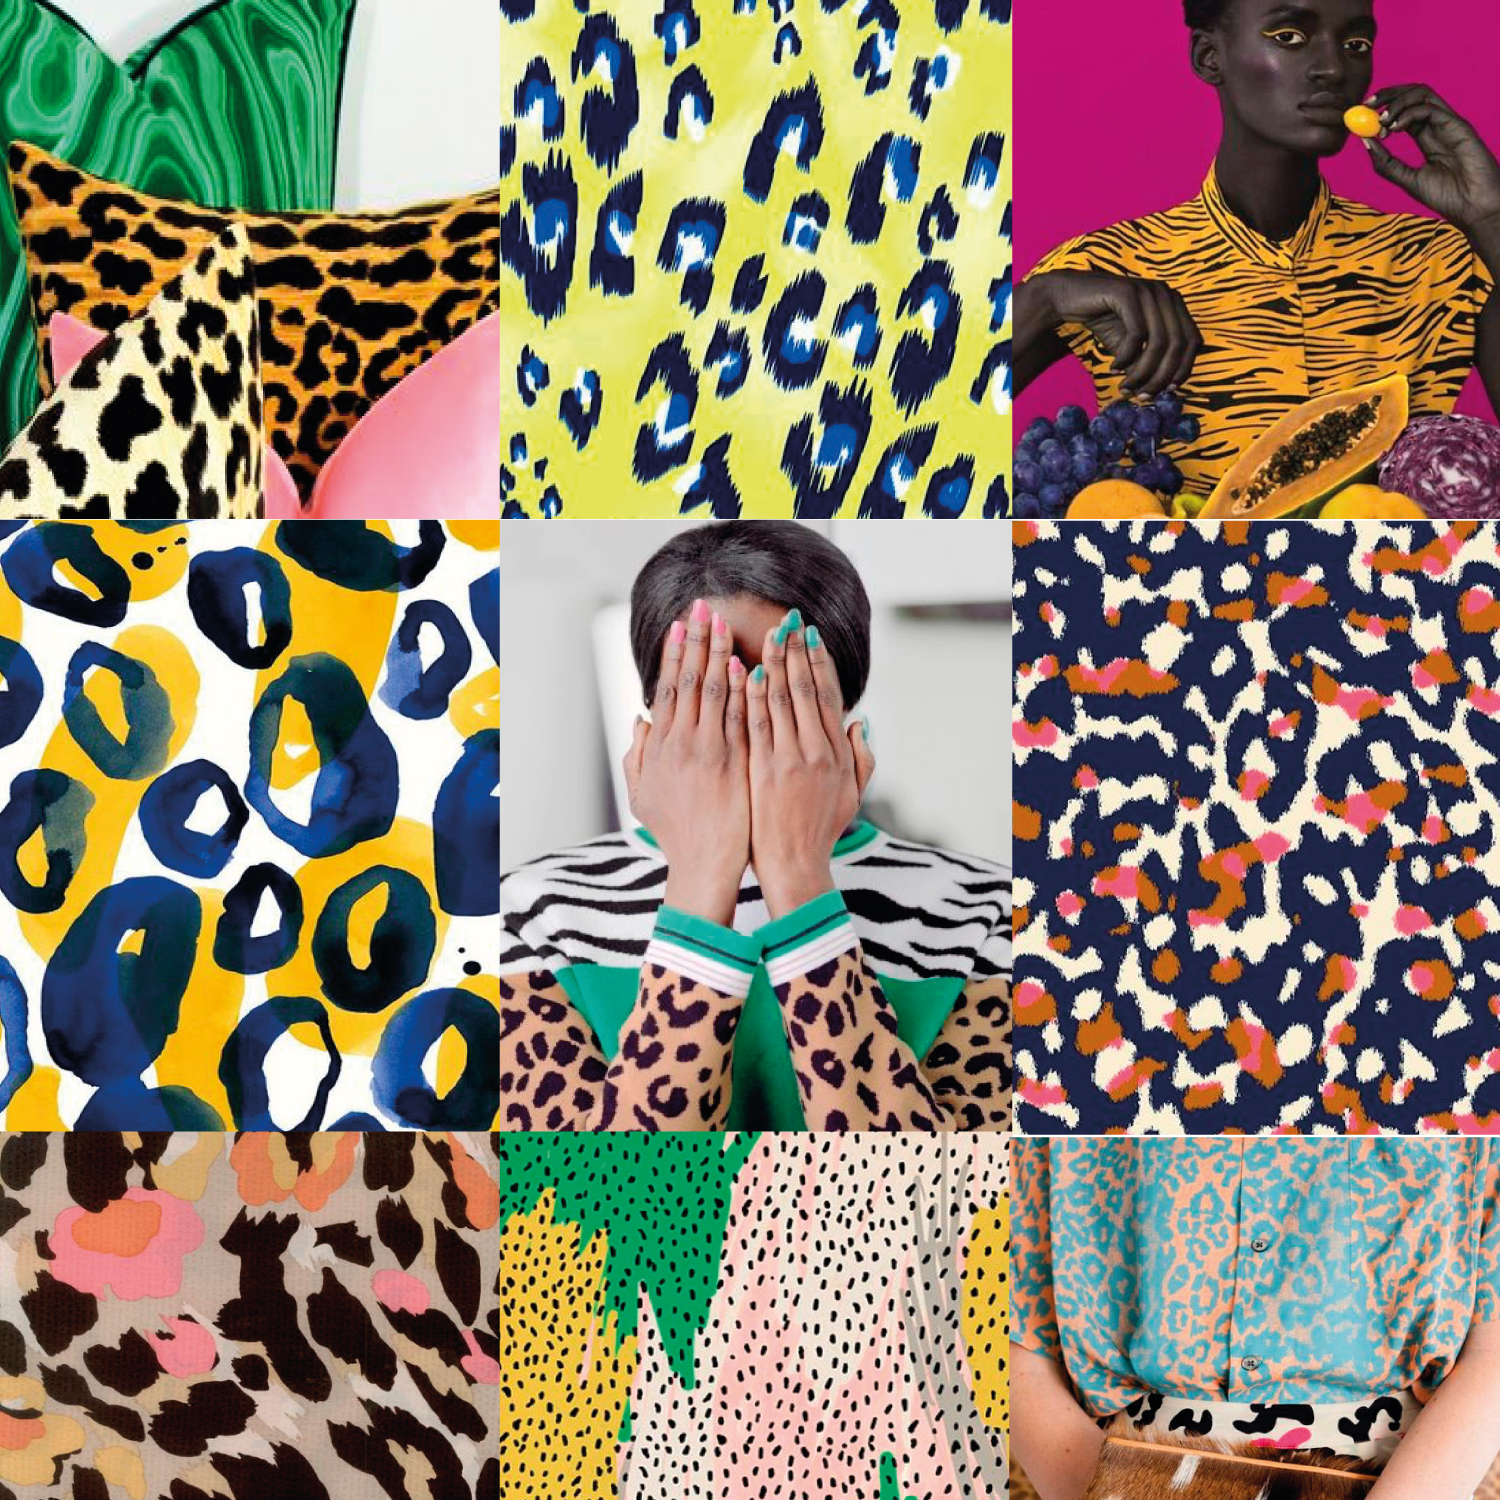 spring summer 2021 womenswear print pattern trends on 2021 decor colour trend predictions id=49118